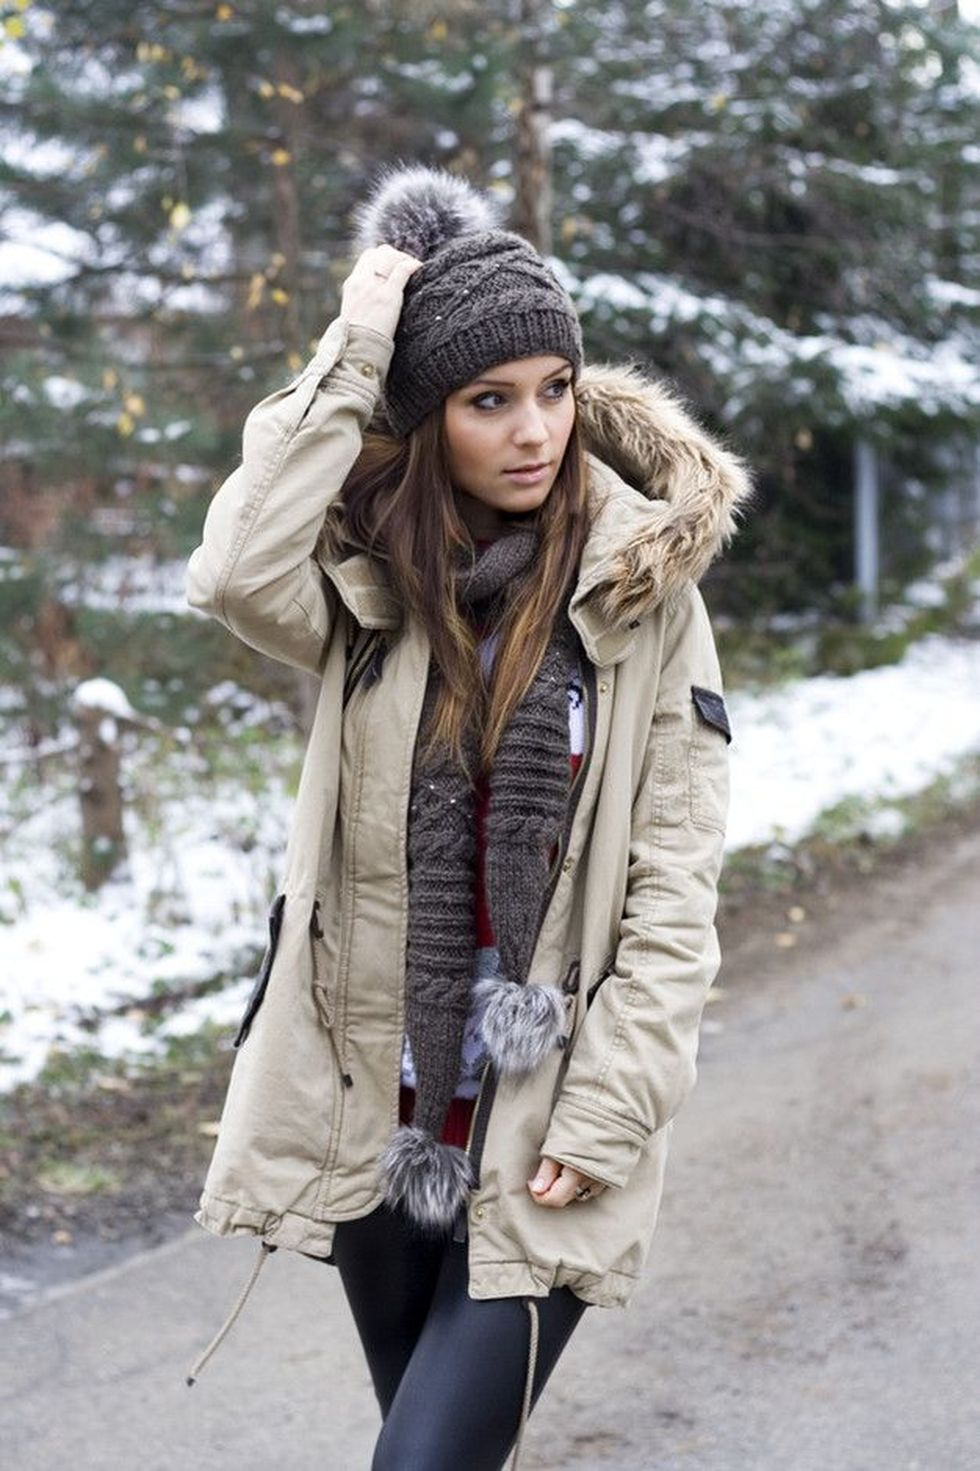 Fashionable women hats for winter and snow outfits 54